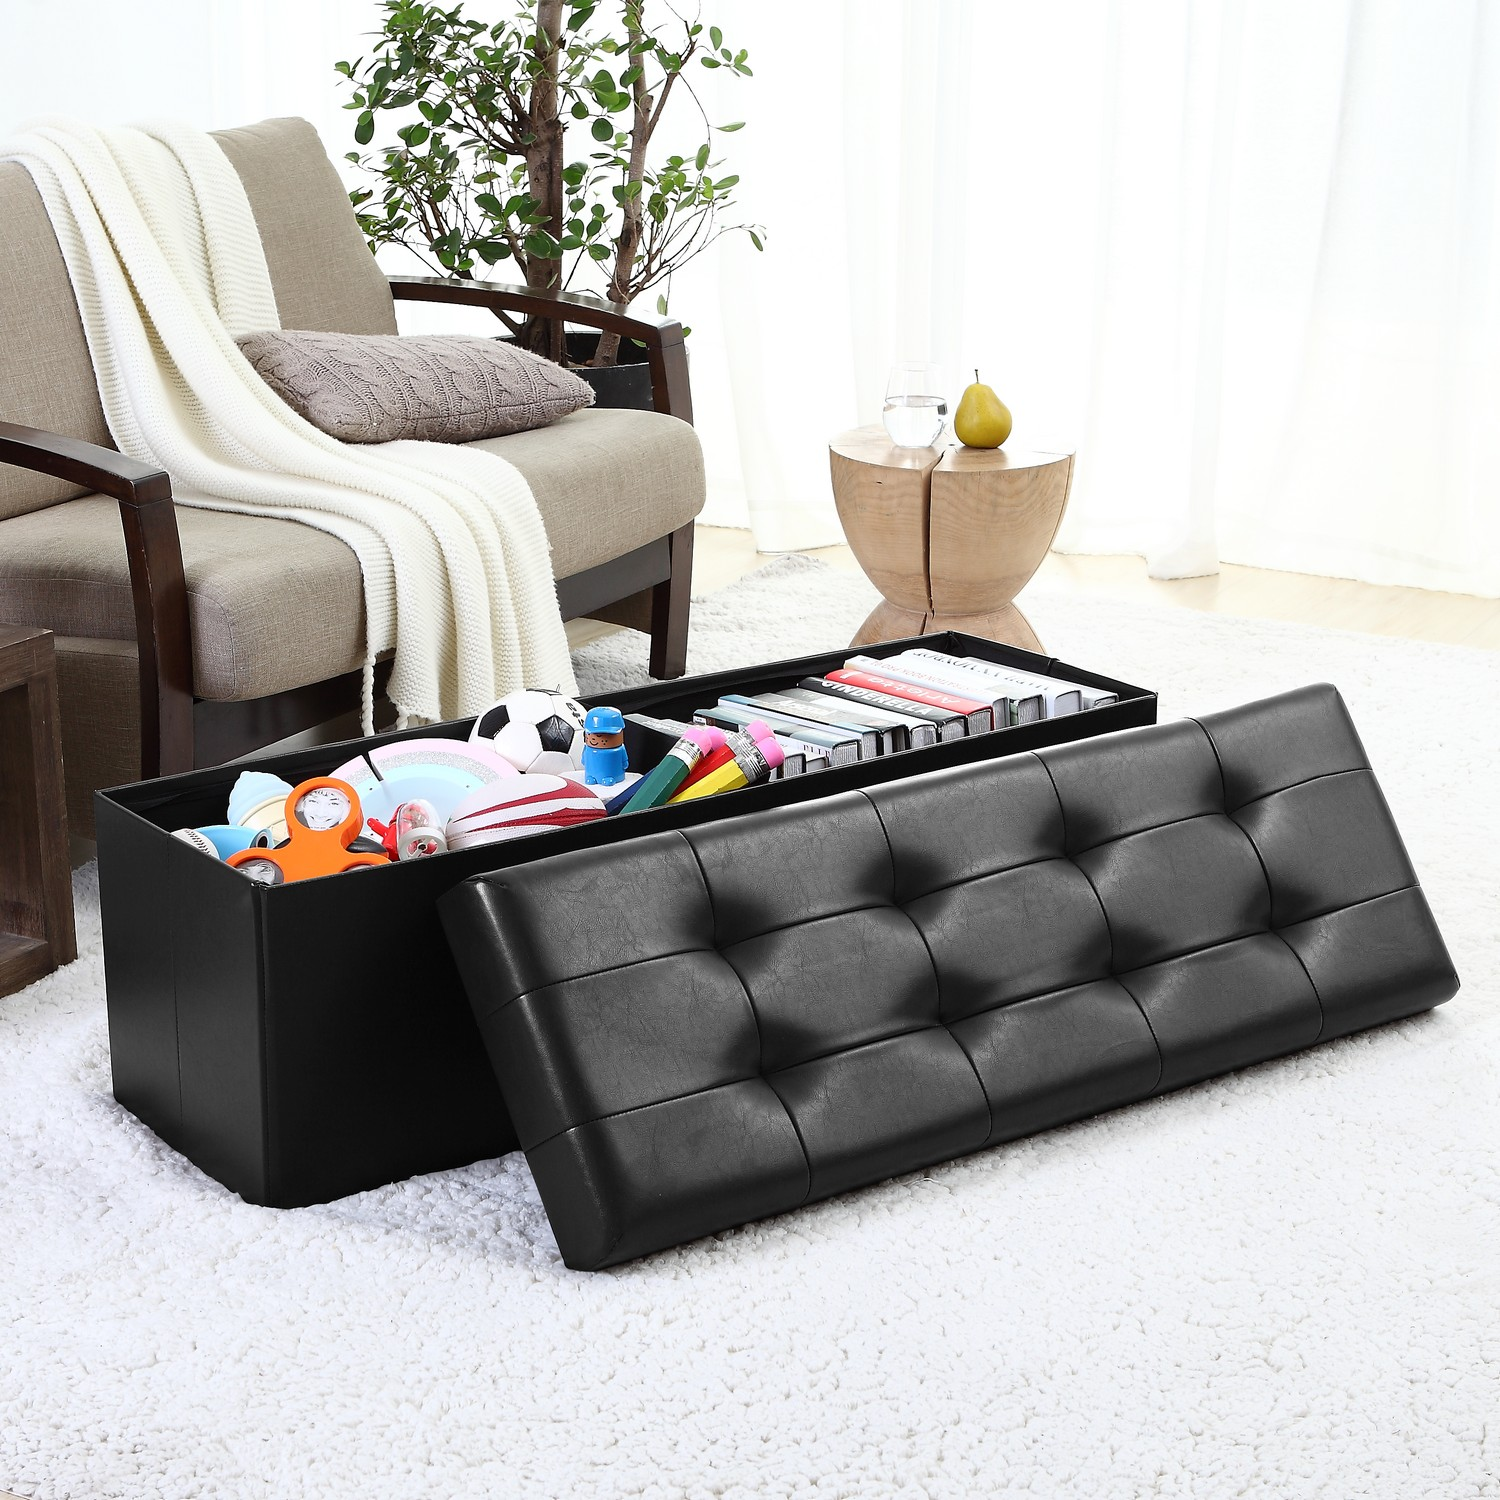 "Ornavo Foldable Tufted Faux Leather Large Storage Ottoman Bench Foot Rest Stool/Seat - 15"" x 45"" x 15""- Black"